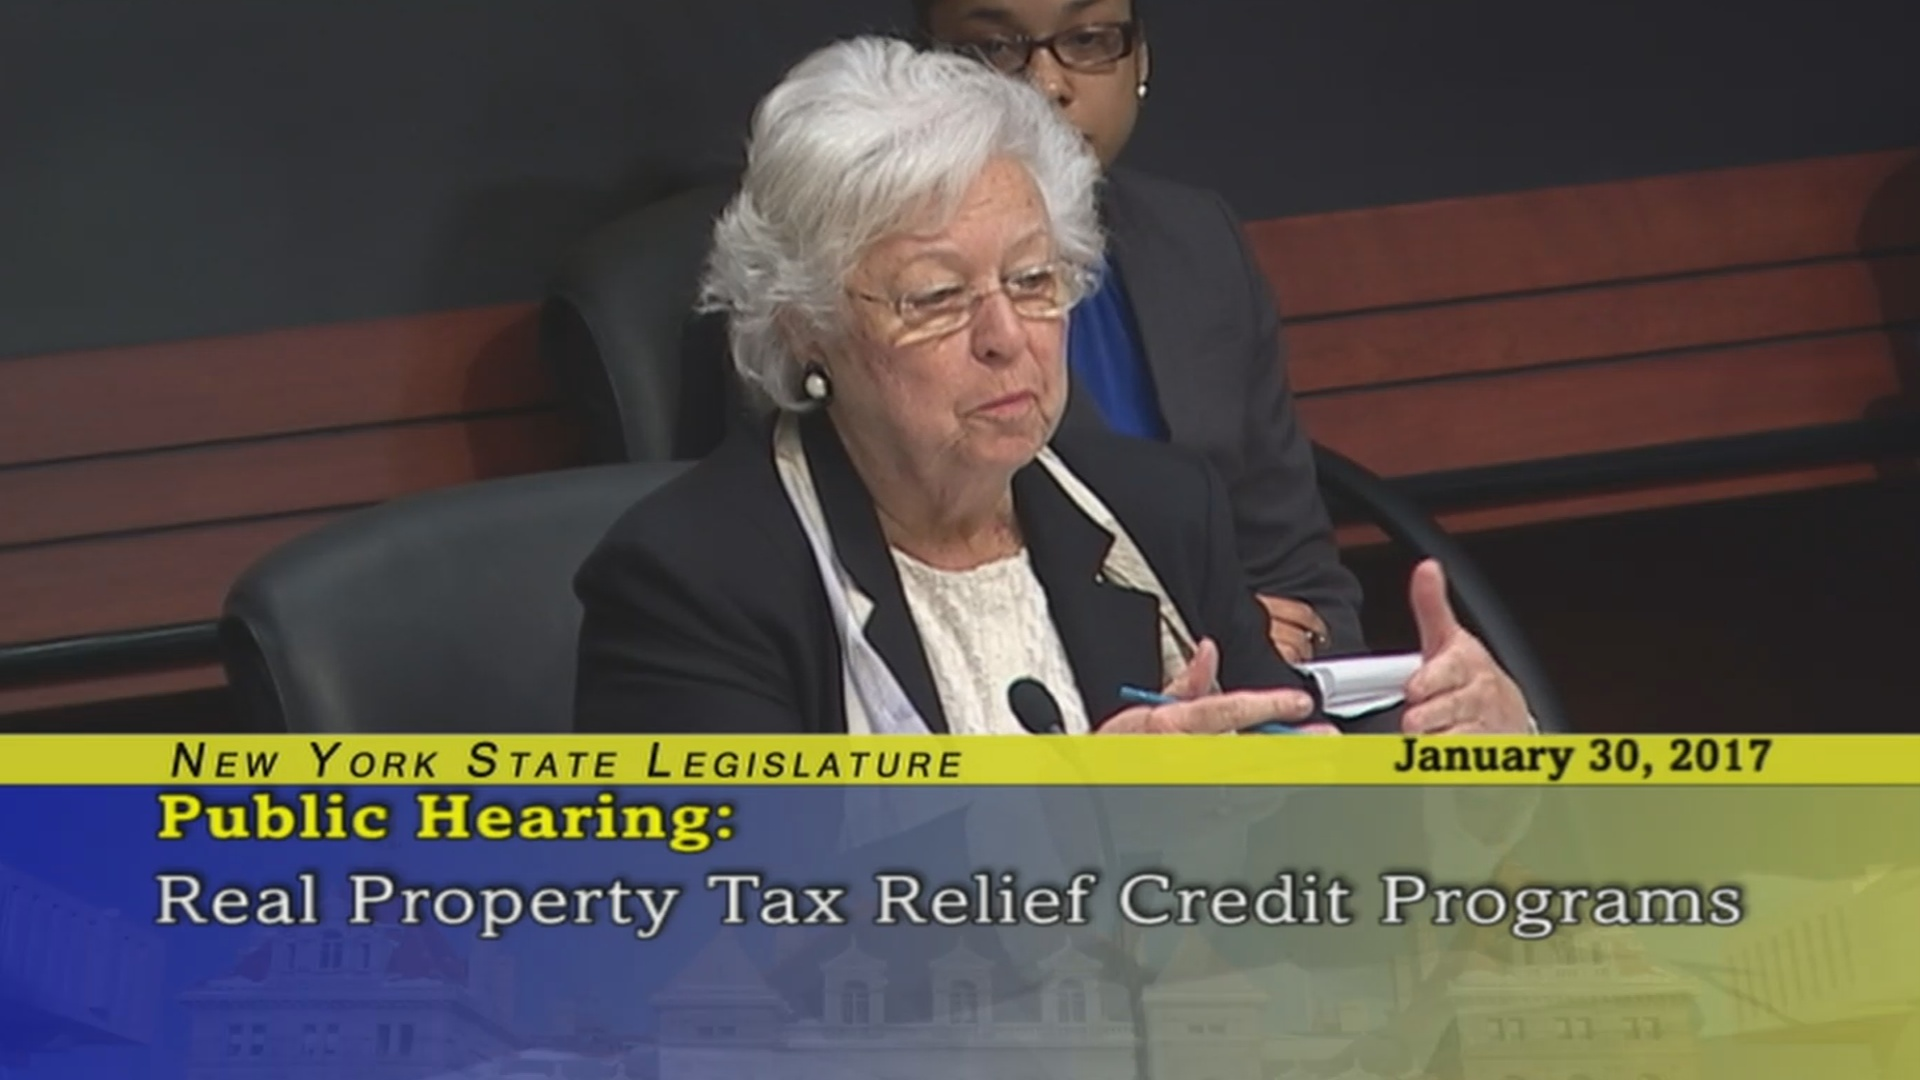 Real Property Taxation Public Hearing